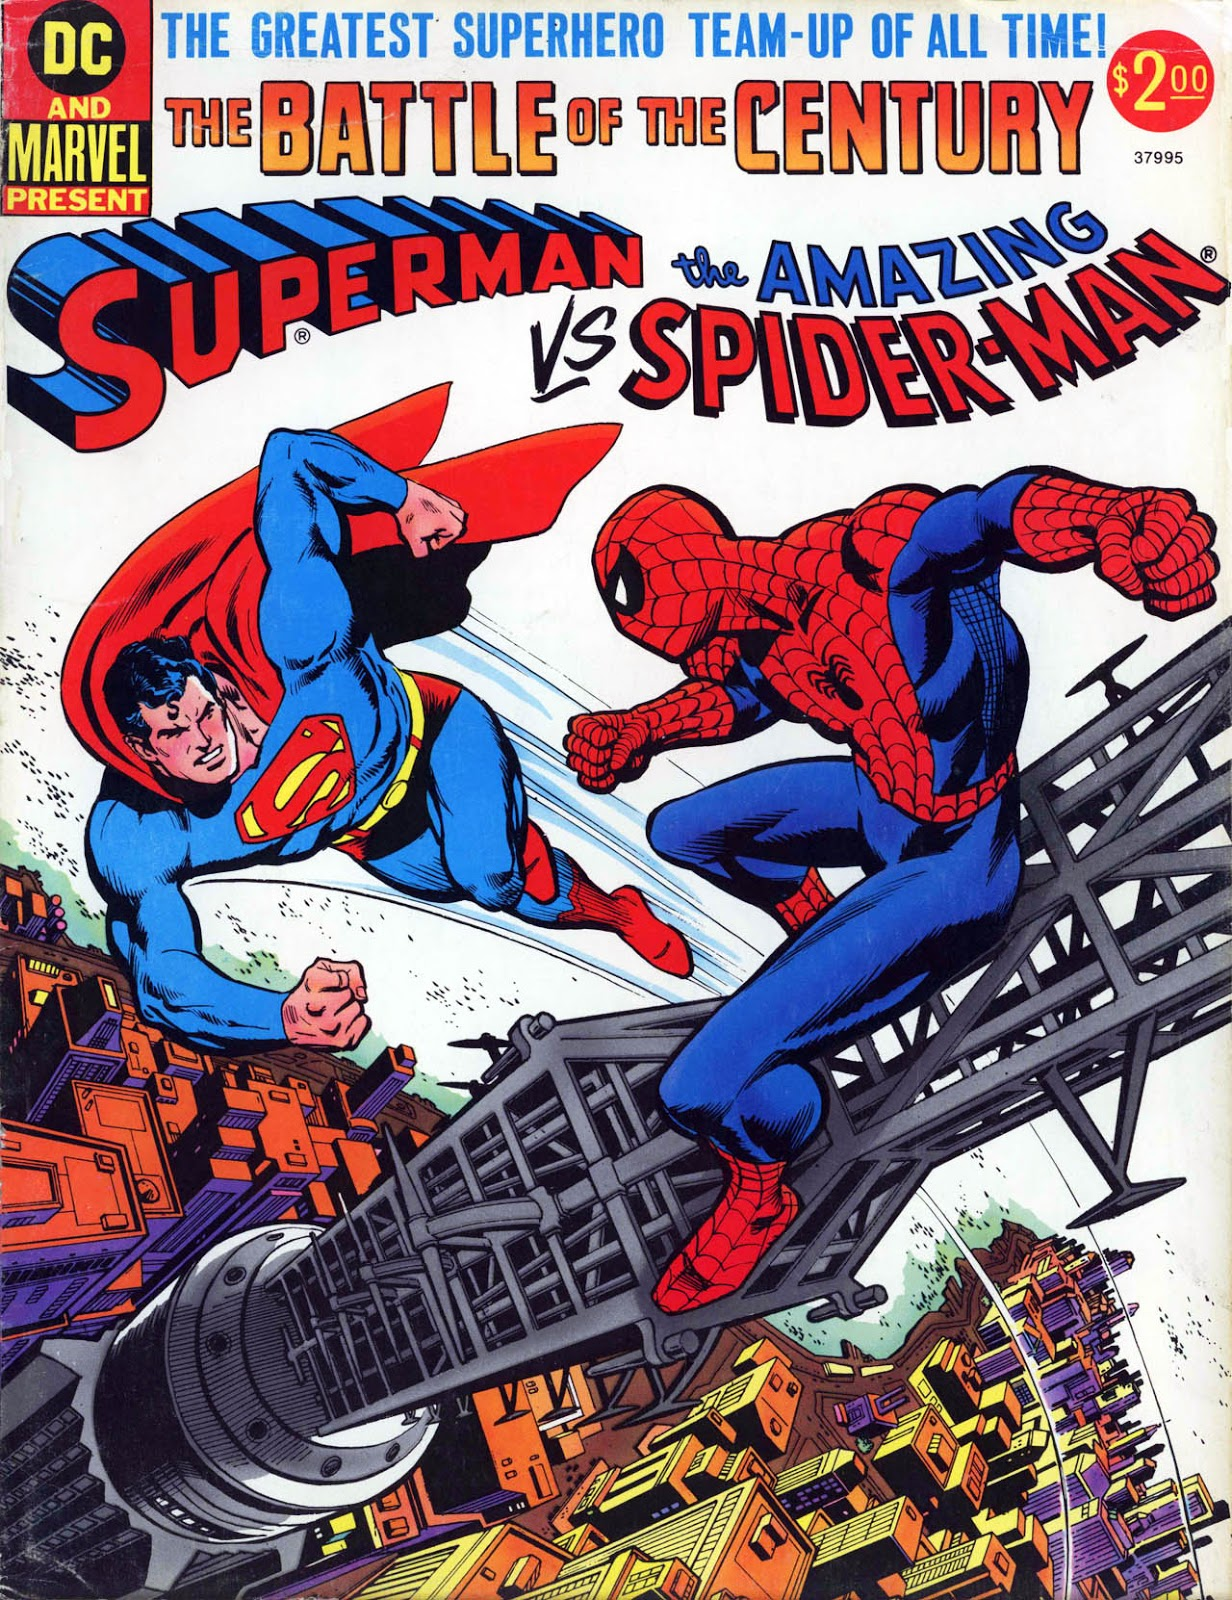 Superman vs The Amazing Spider-Man Vol 1 1 - DC Comics Database